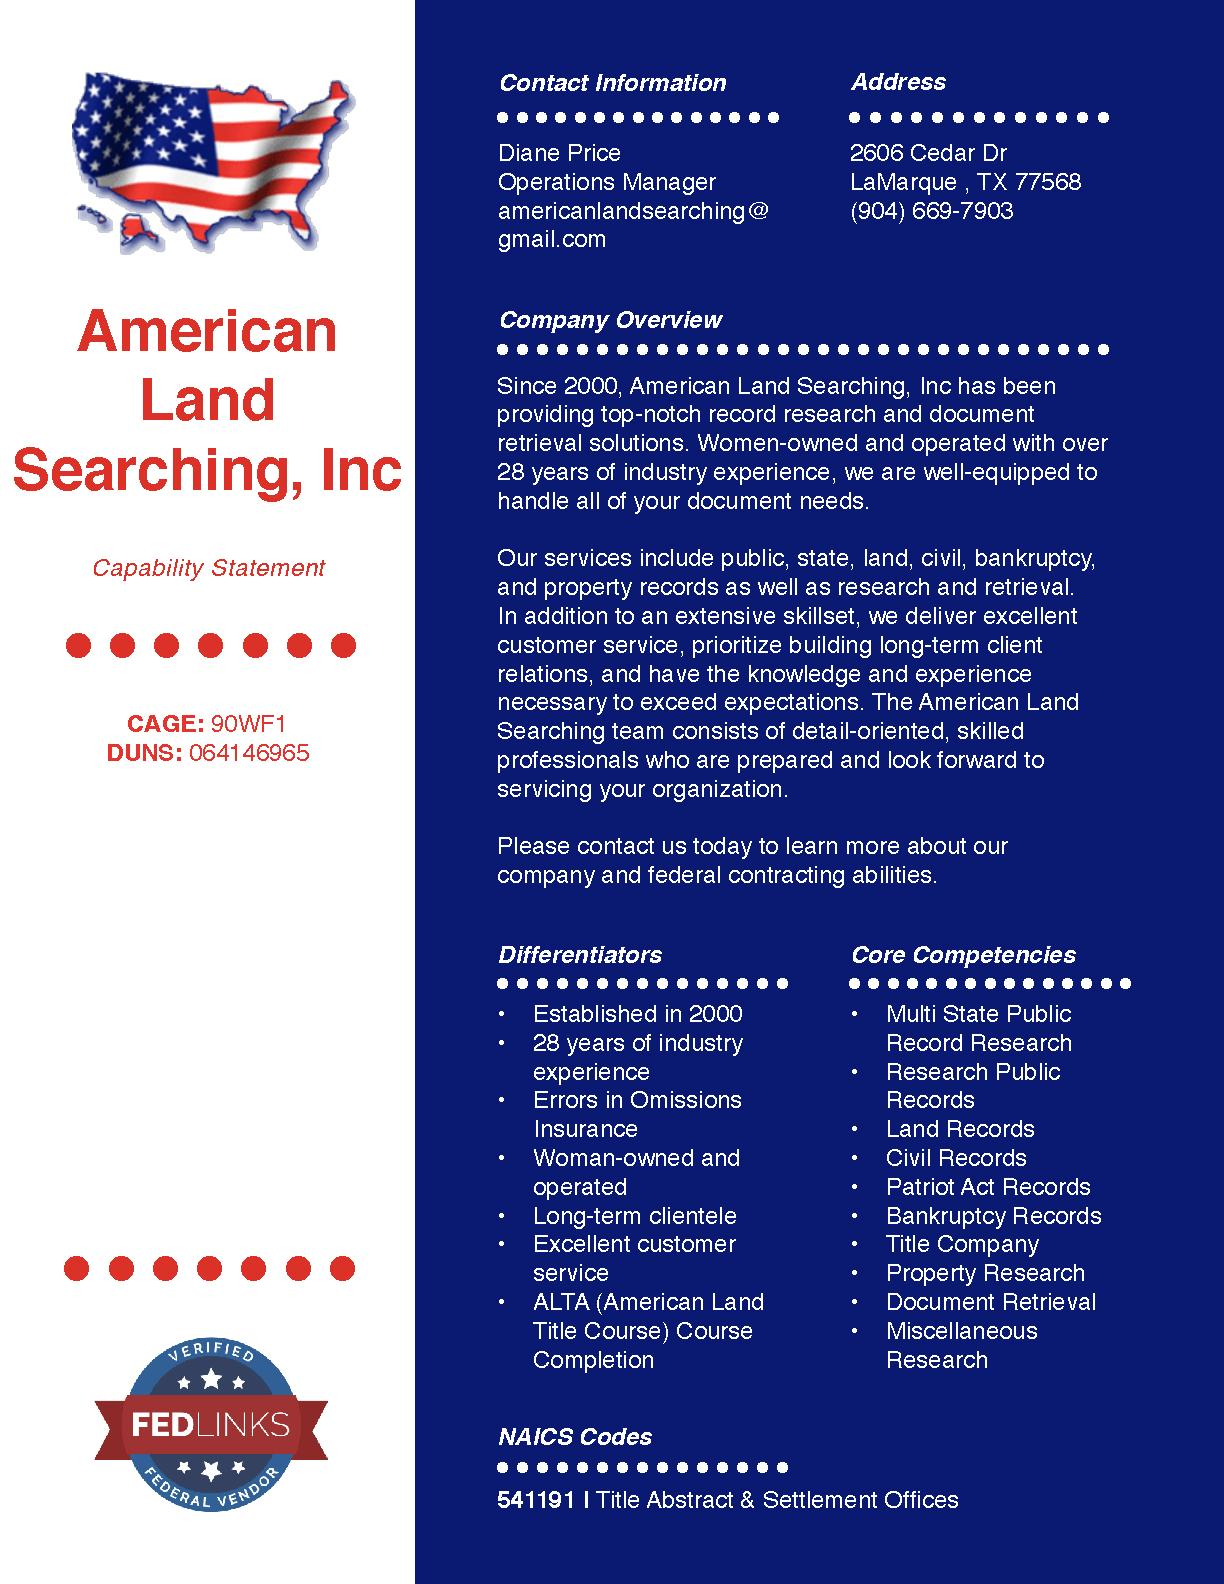 American land searching  inc capability statement